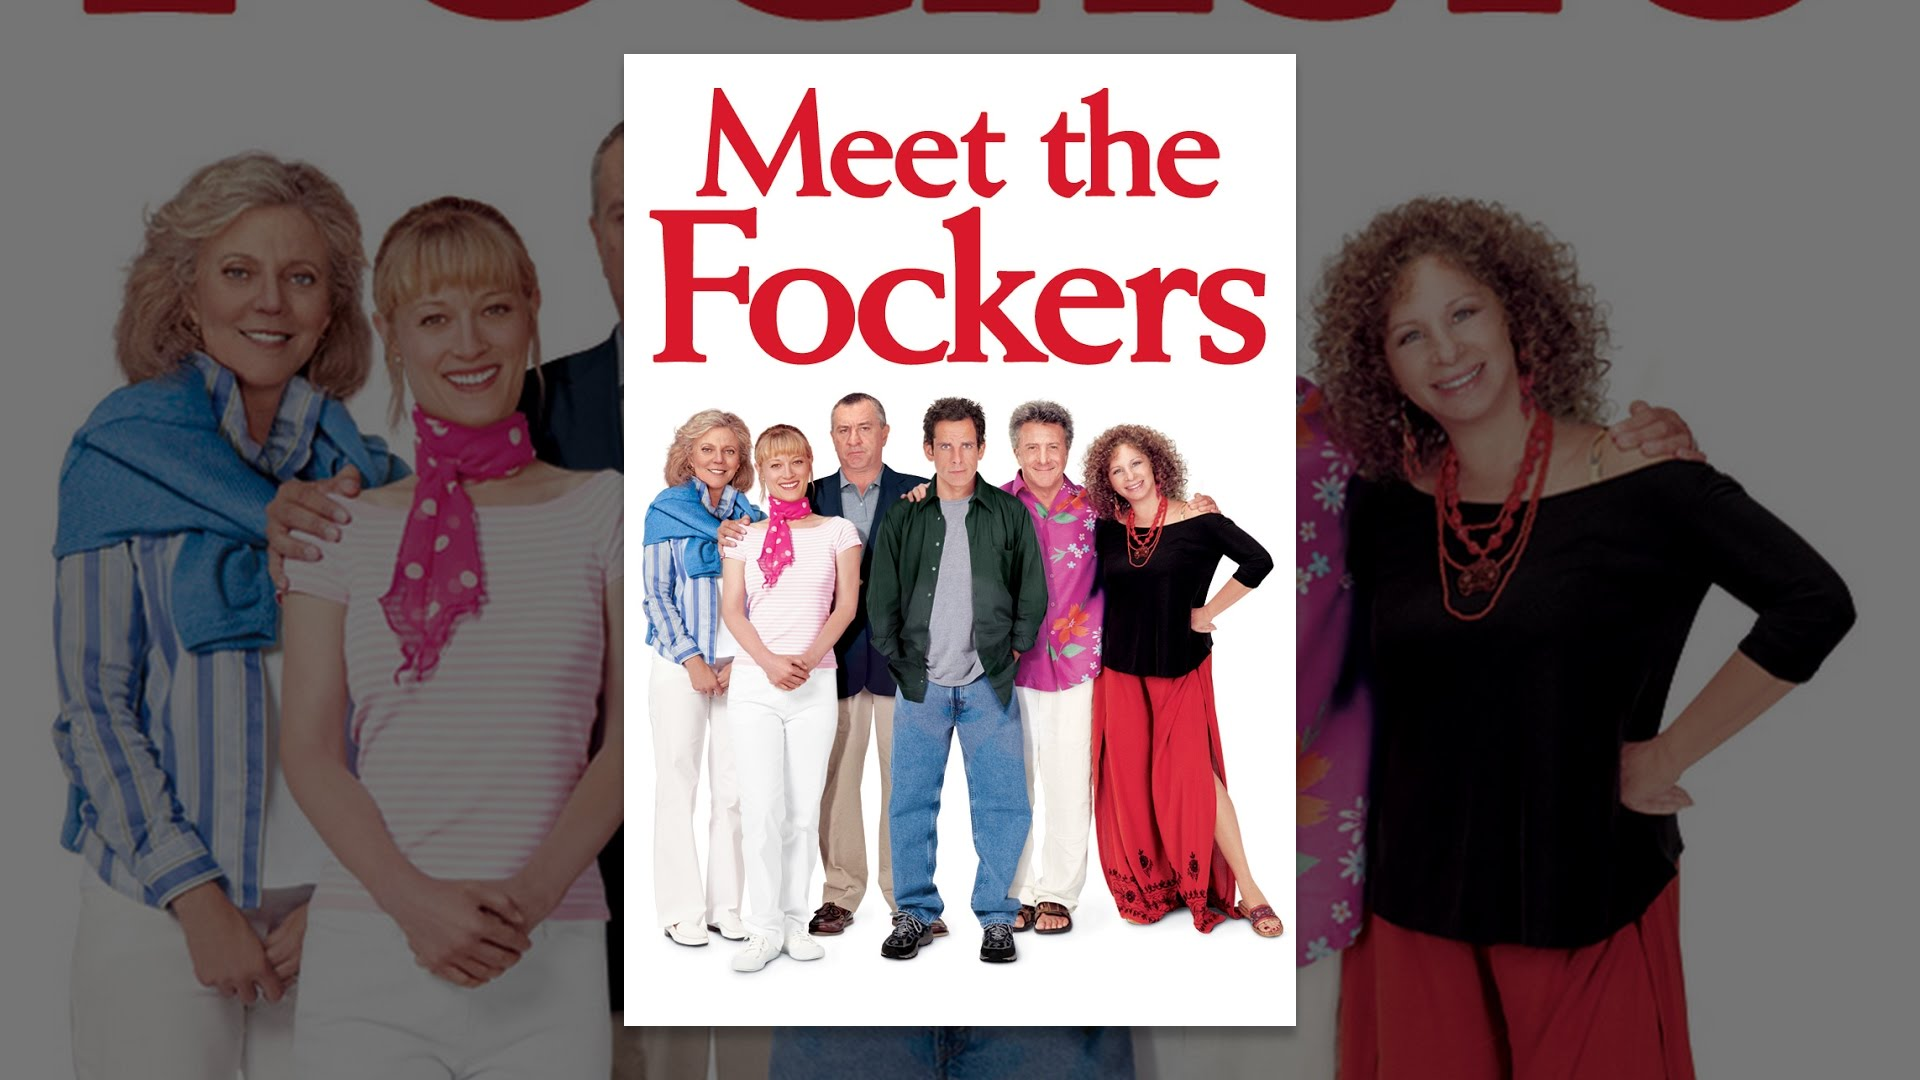 Meet the fockers full movie online